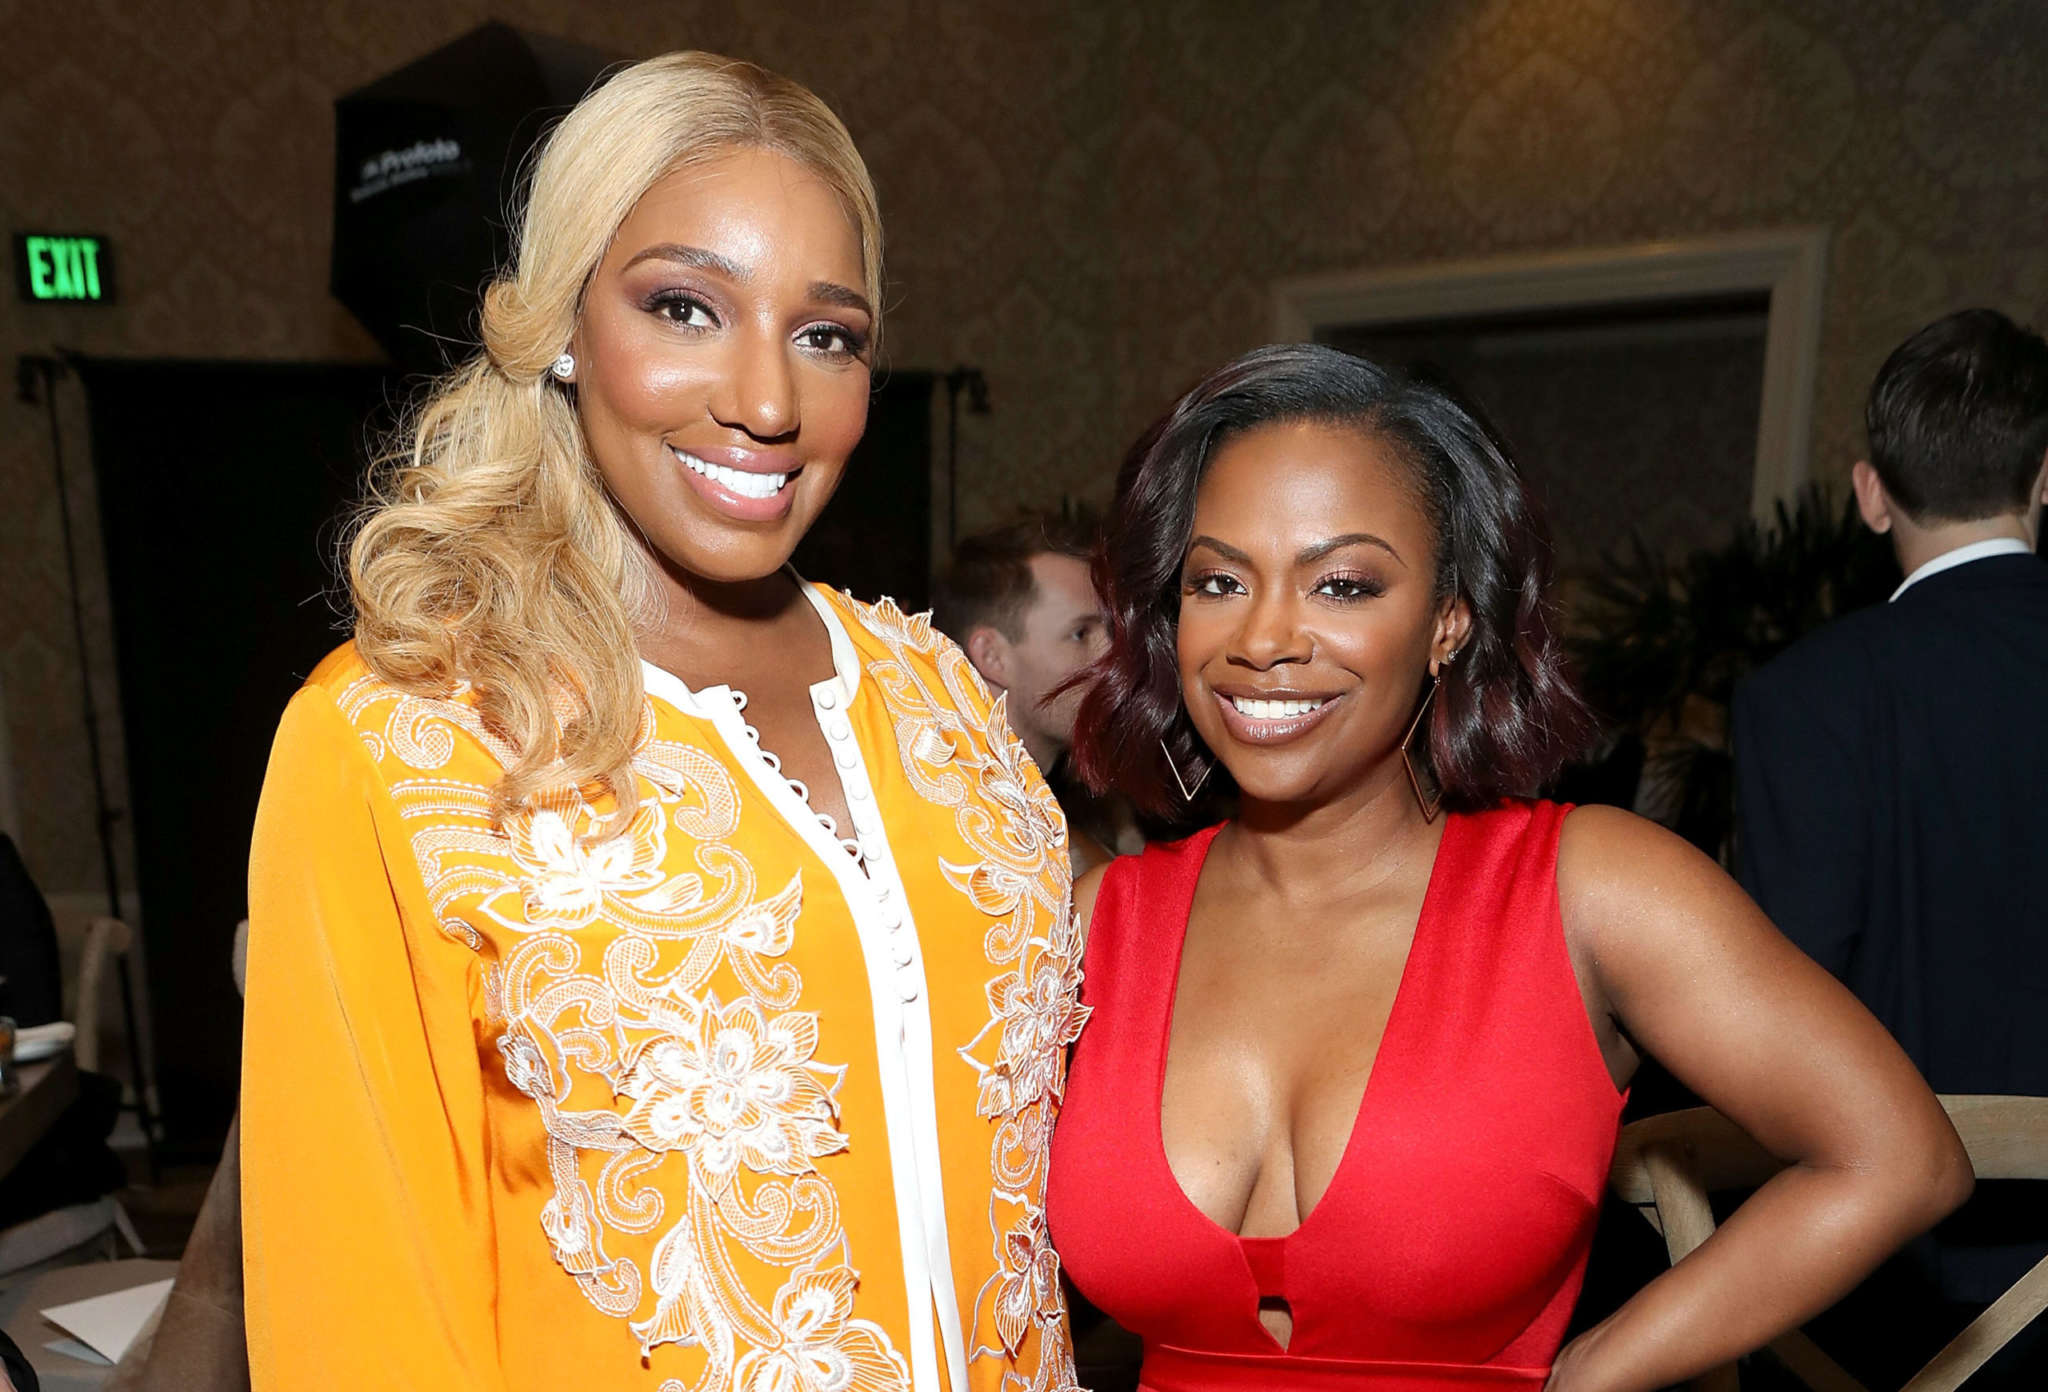 NeNe Leakes Praises Marlo Hampton's Amazing Video About 'Black Lives Matter' - This Video Became Viral On Social Media